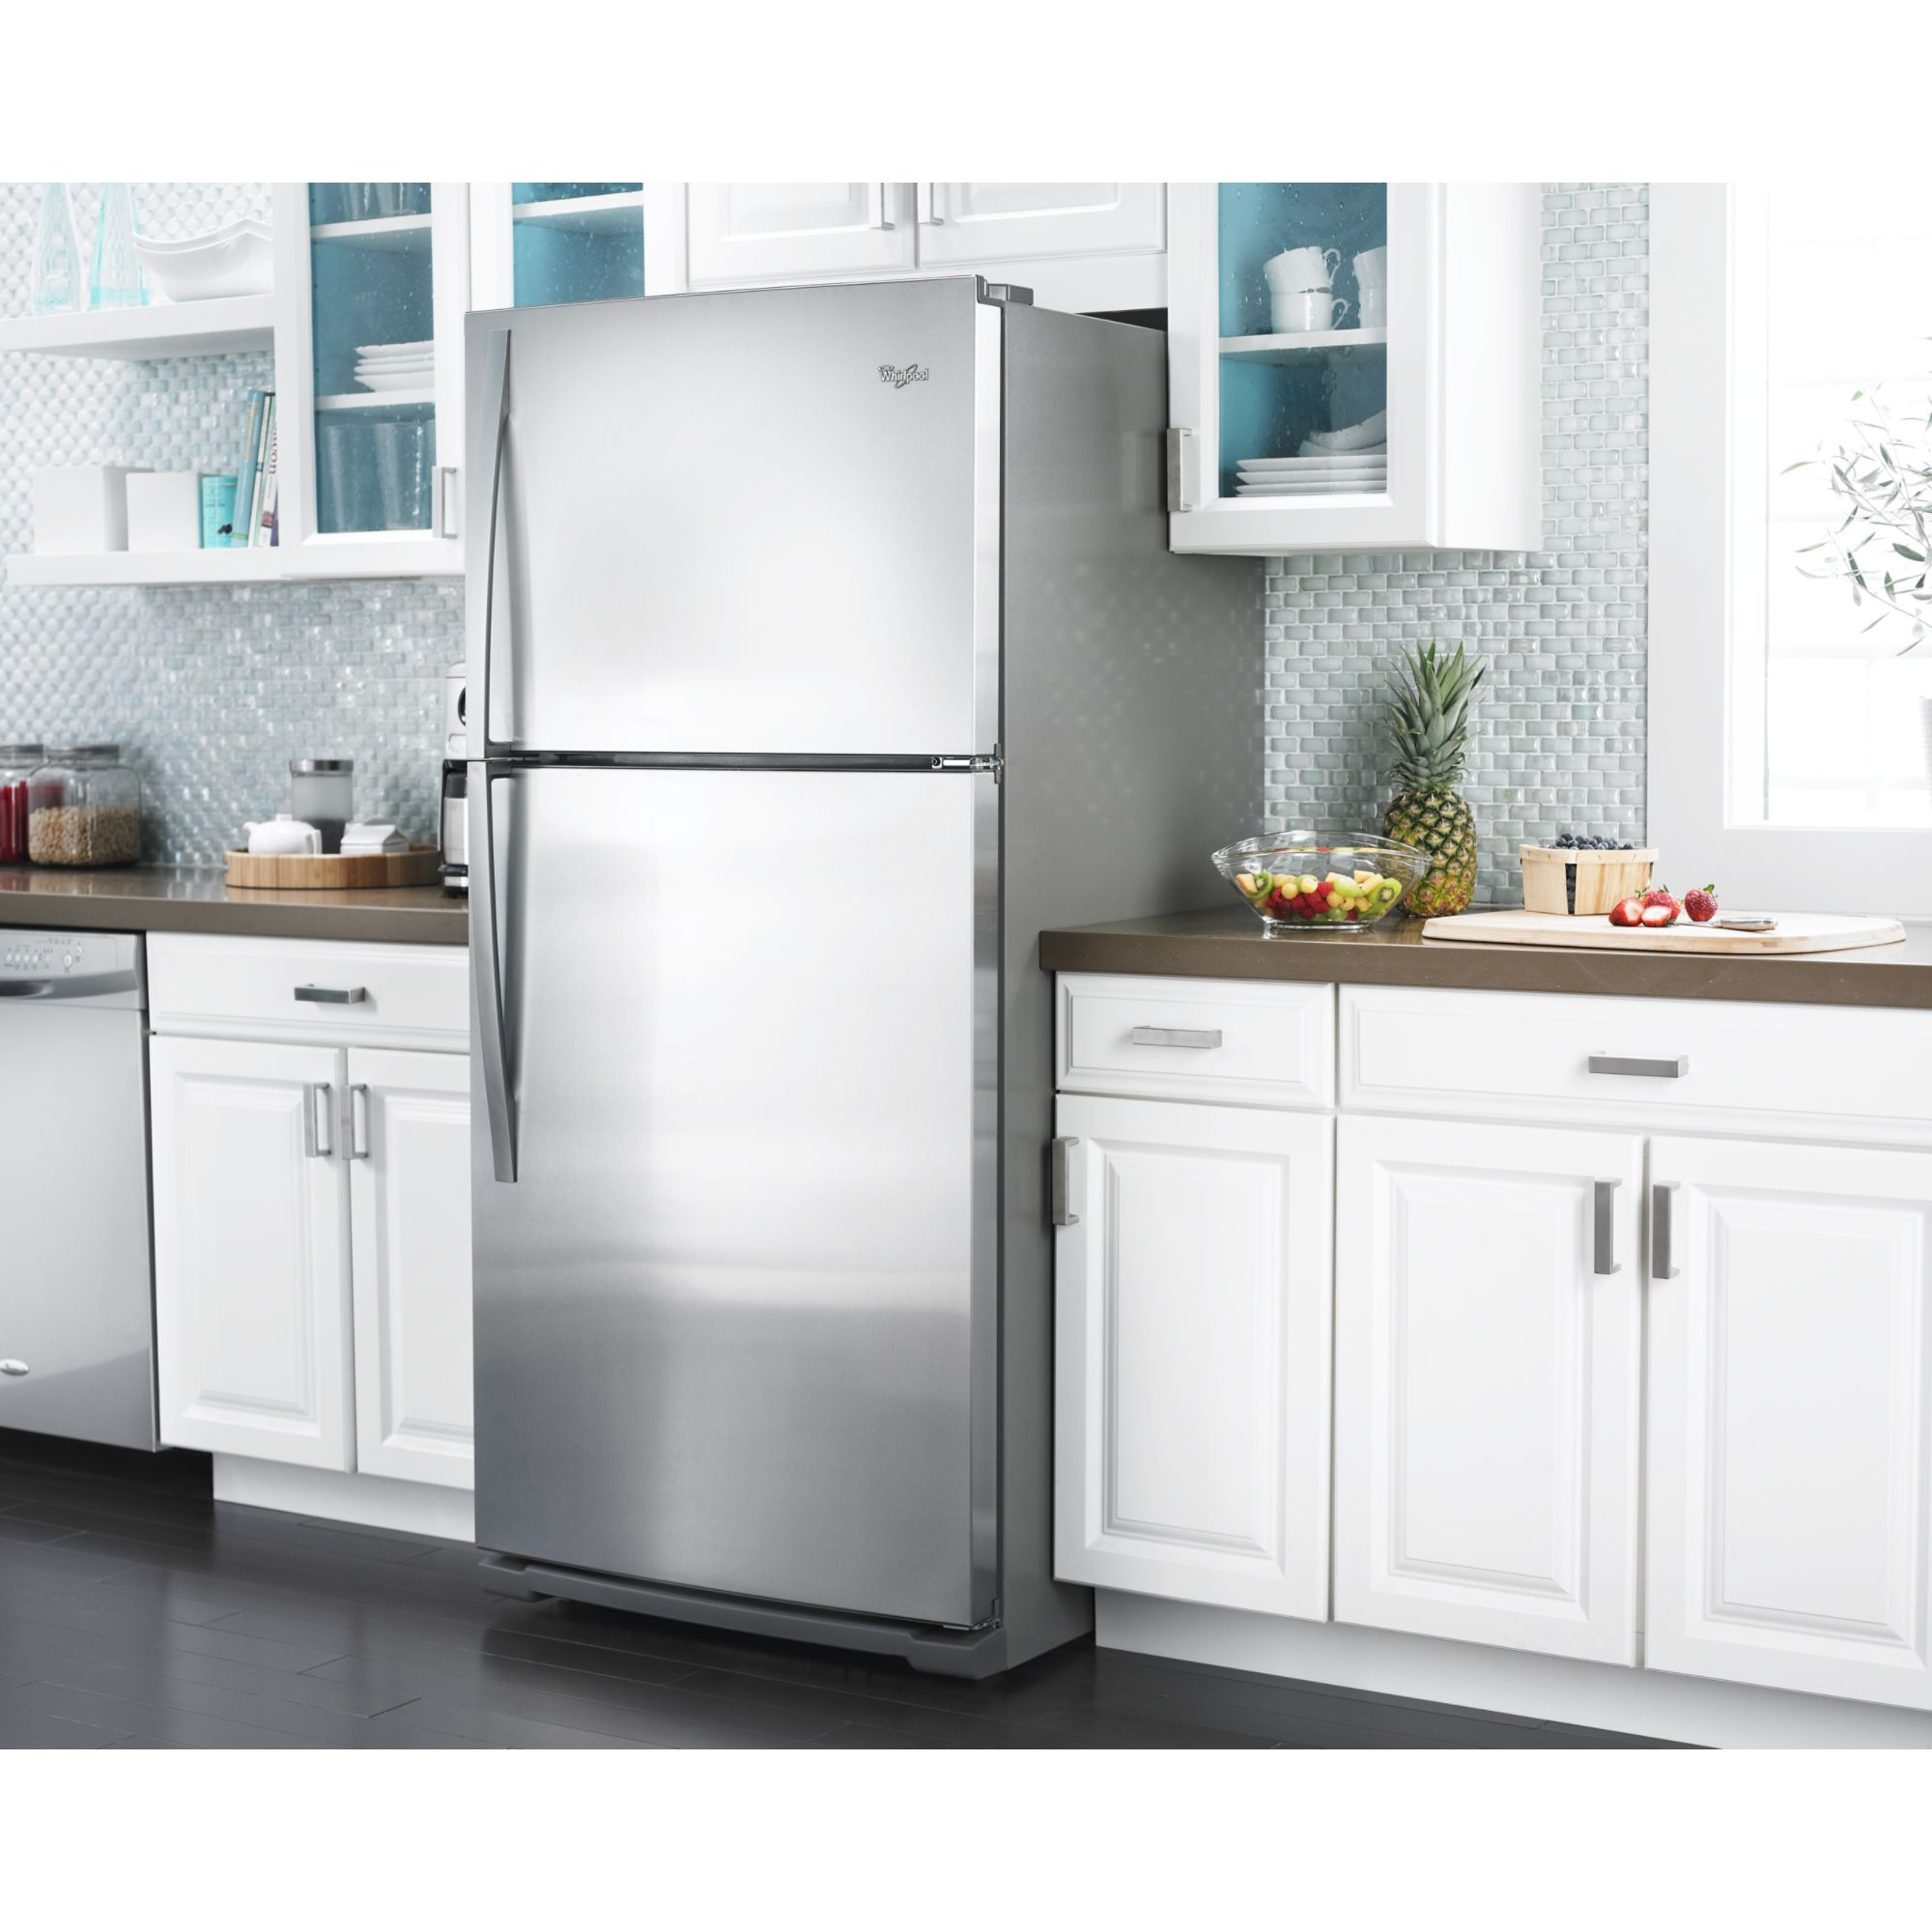 Whirlpool 21.1 cu. ft. Top-freezer Refrigerator w/ CEE Tier 3 Rating - Stainless Steel